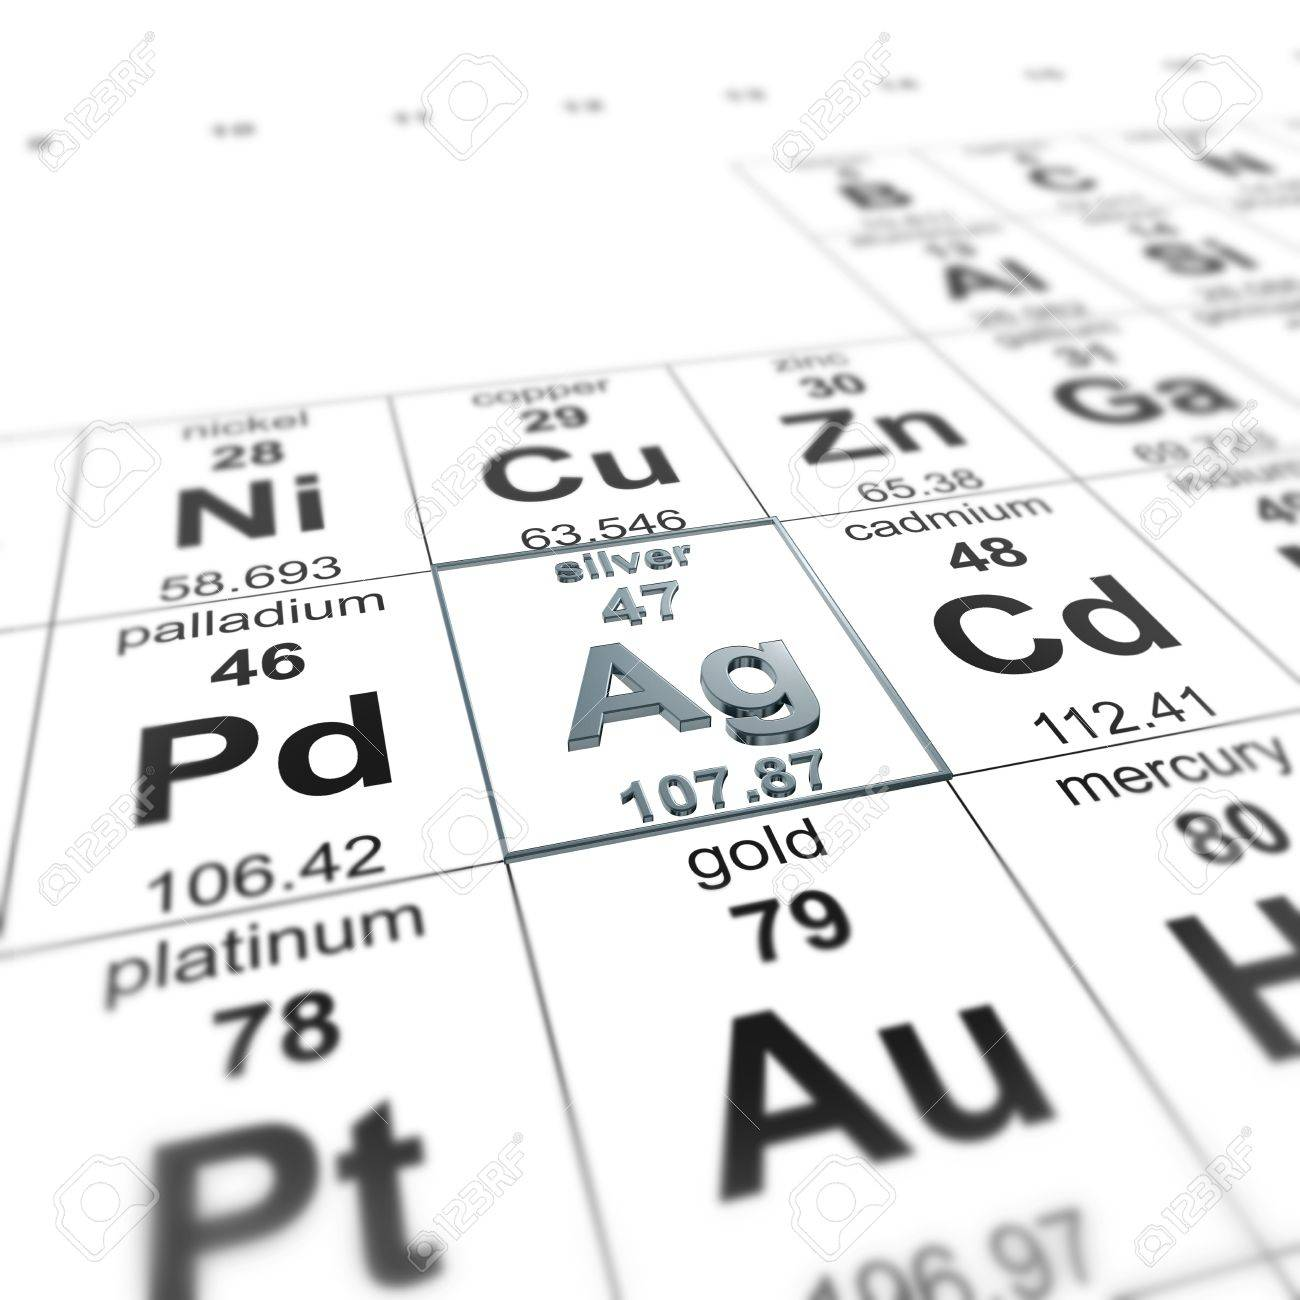 Periodic table of elements focused on silver stock photo picture periodic table of elements focused on silver stock photo 20109194 urtaz Image collections